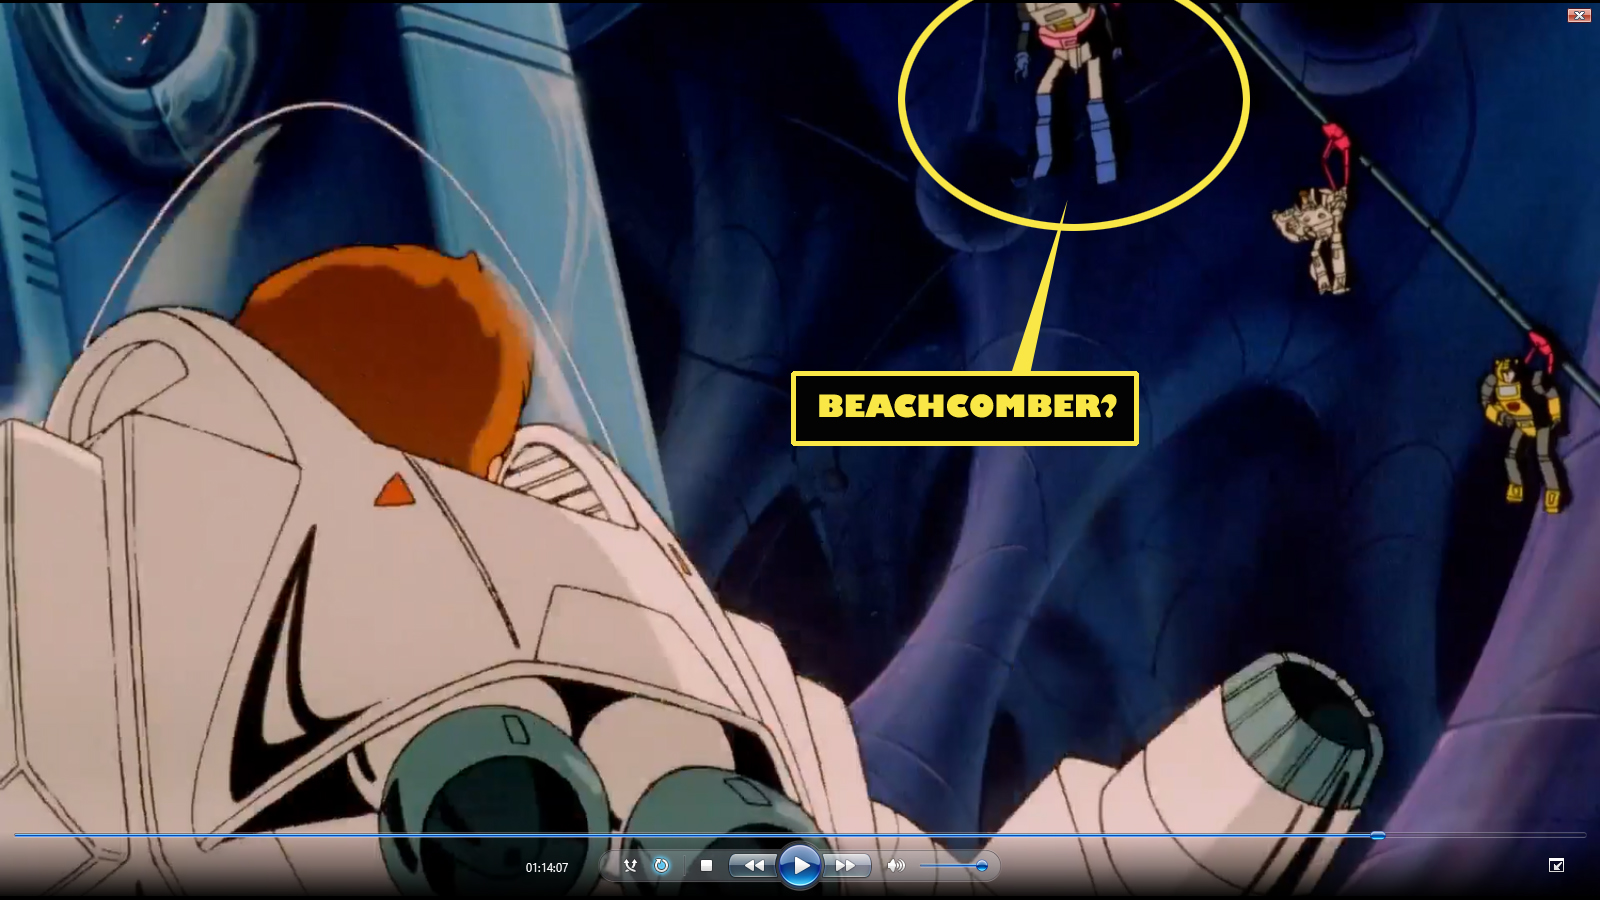 Another throwaway Autobot death?